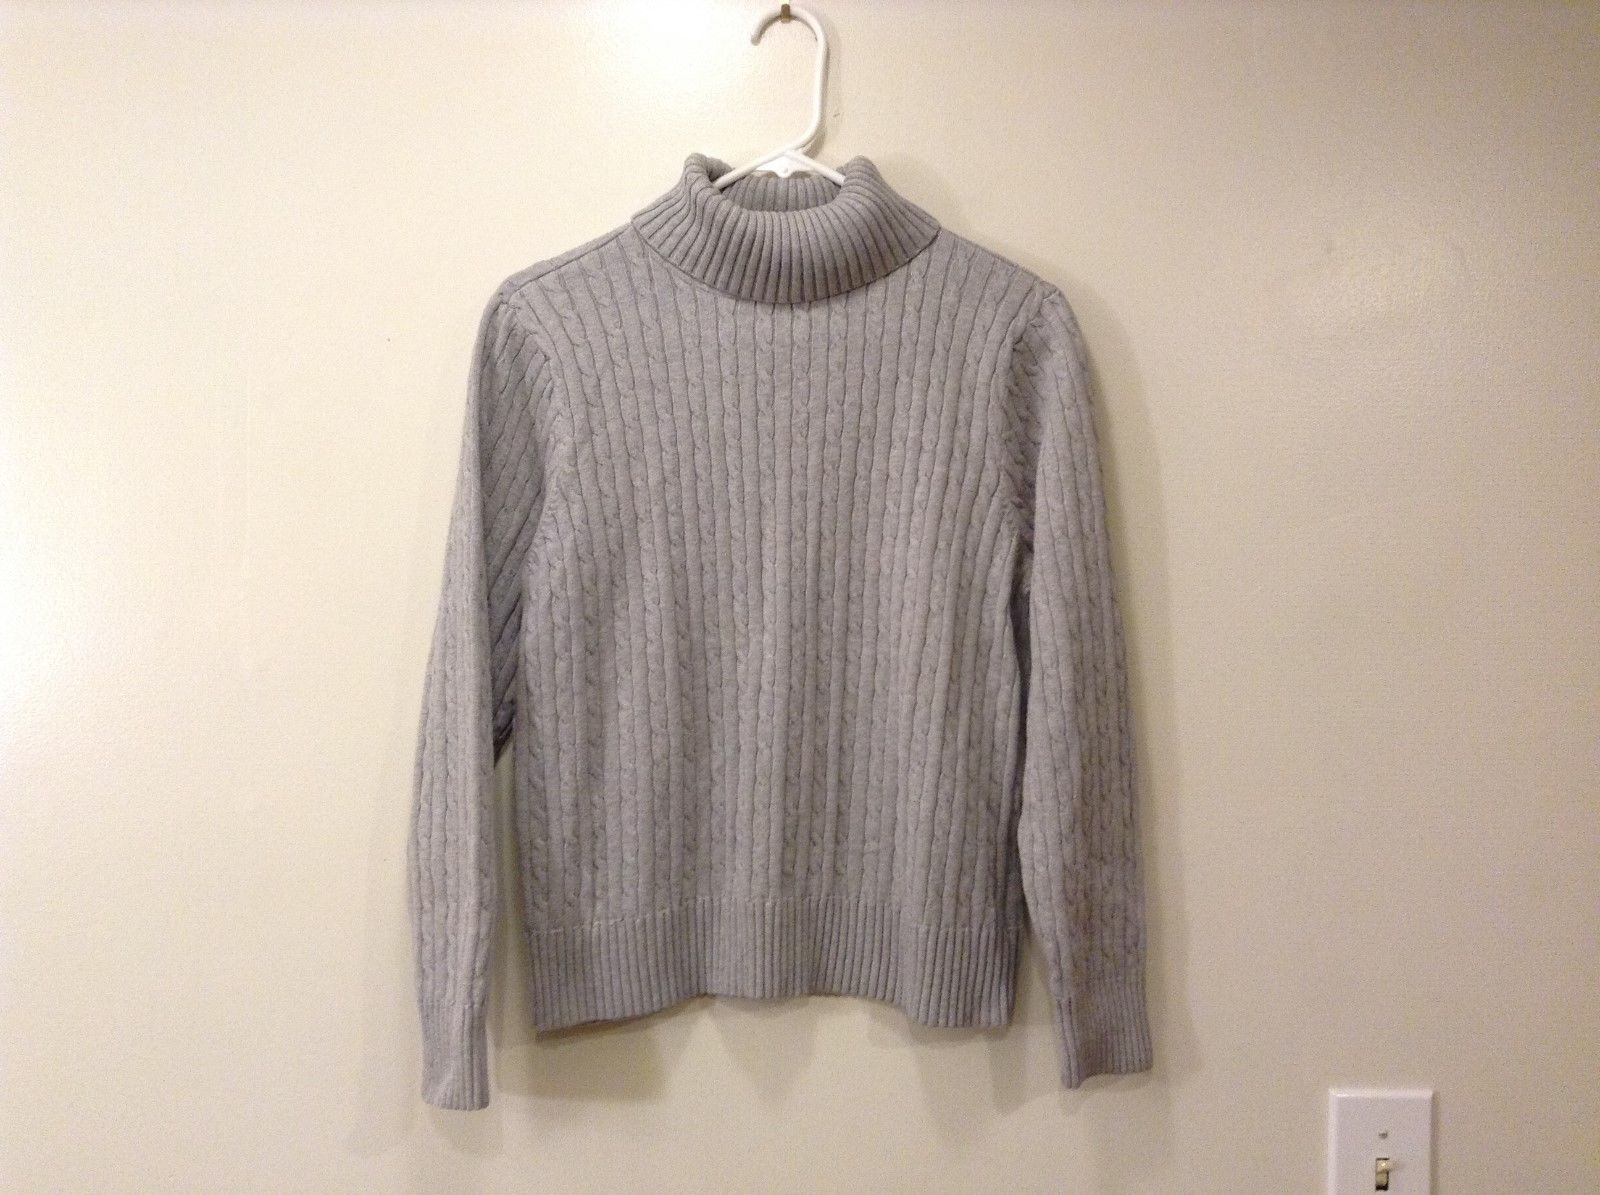 Ladies Jeanne Pierre Heather Gray Knitted Turtleneck Sz XL